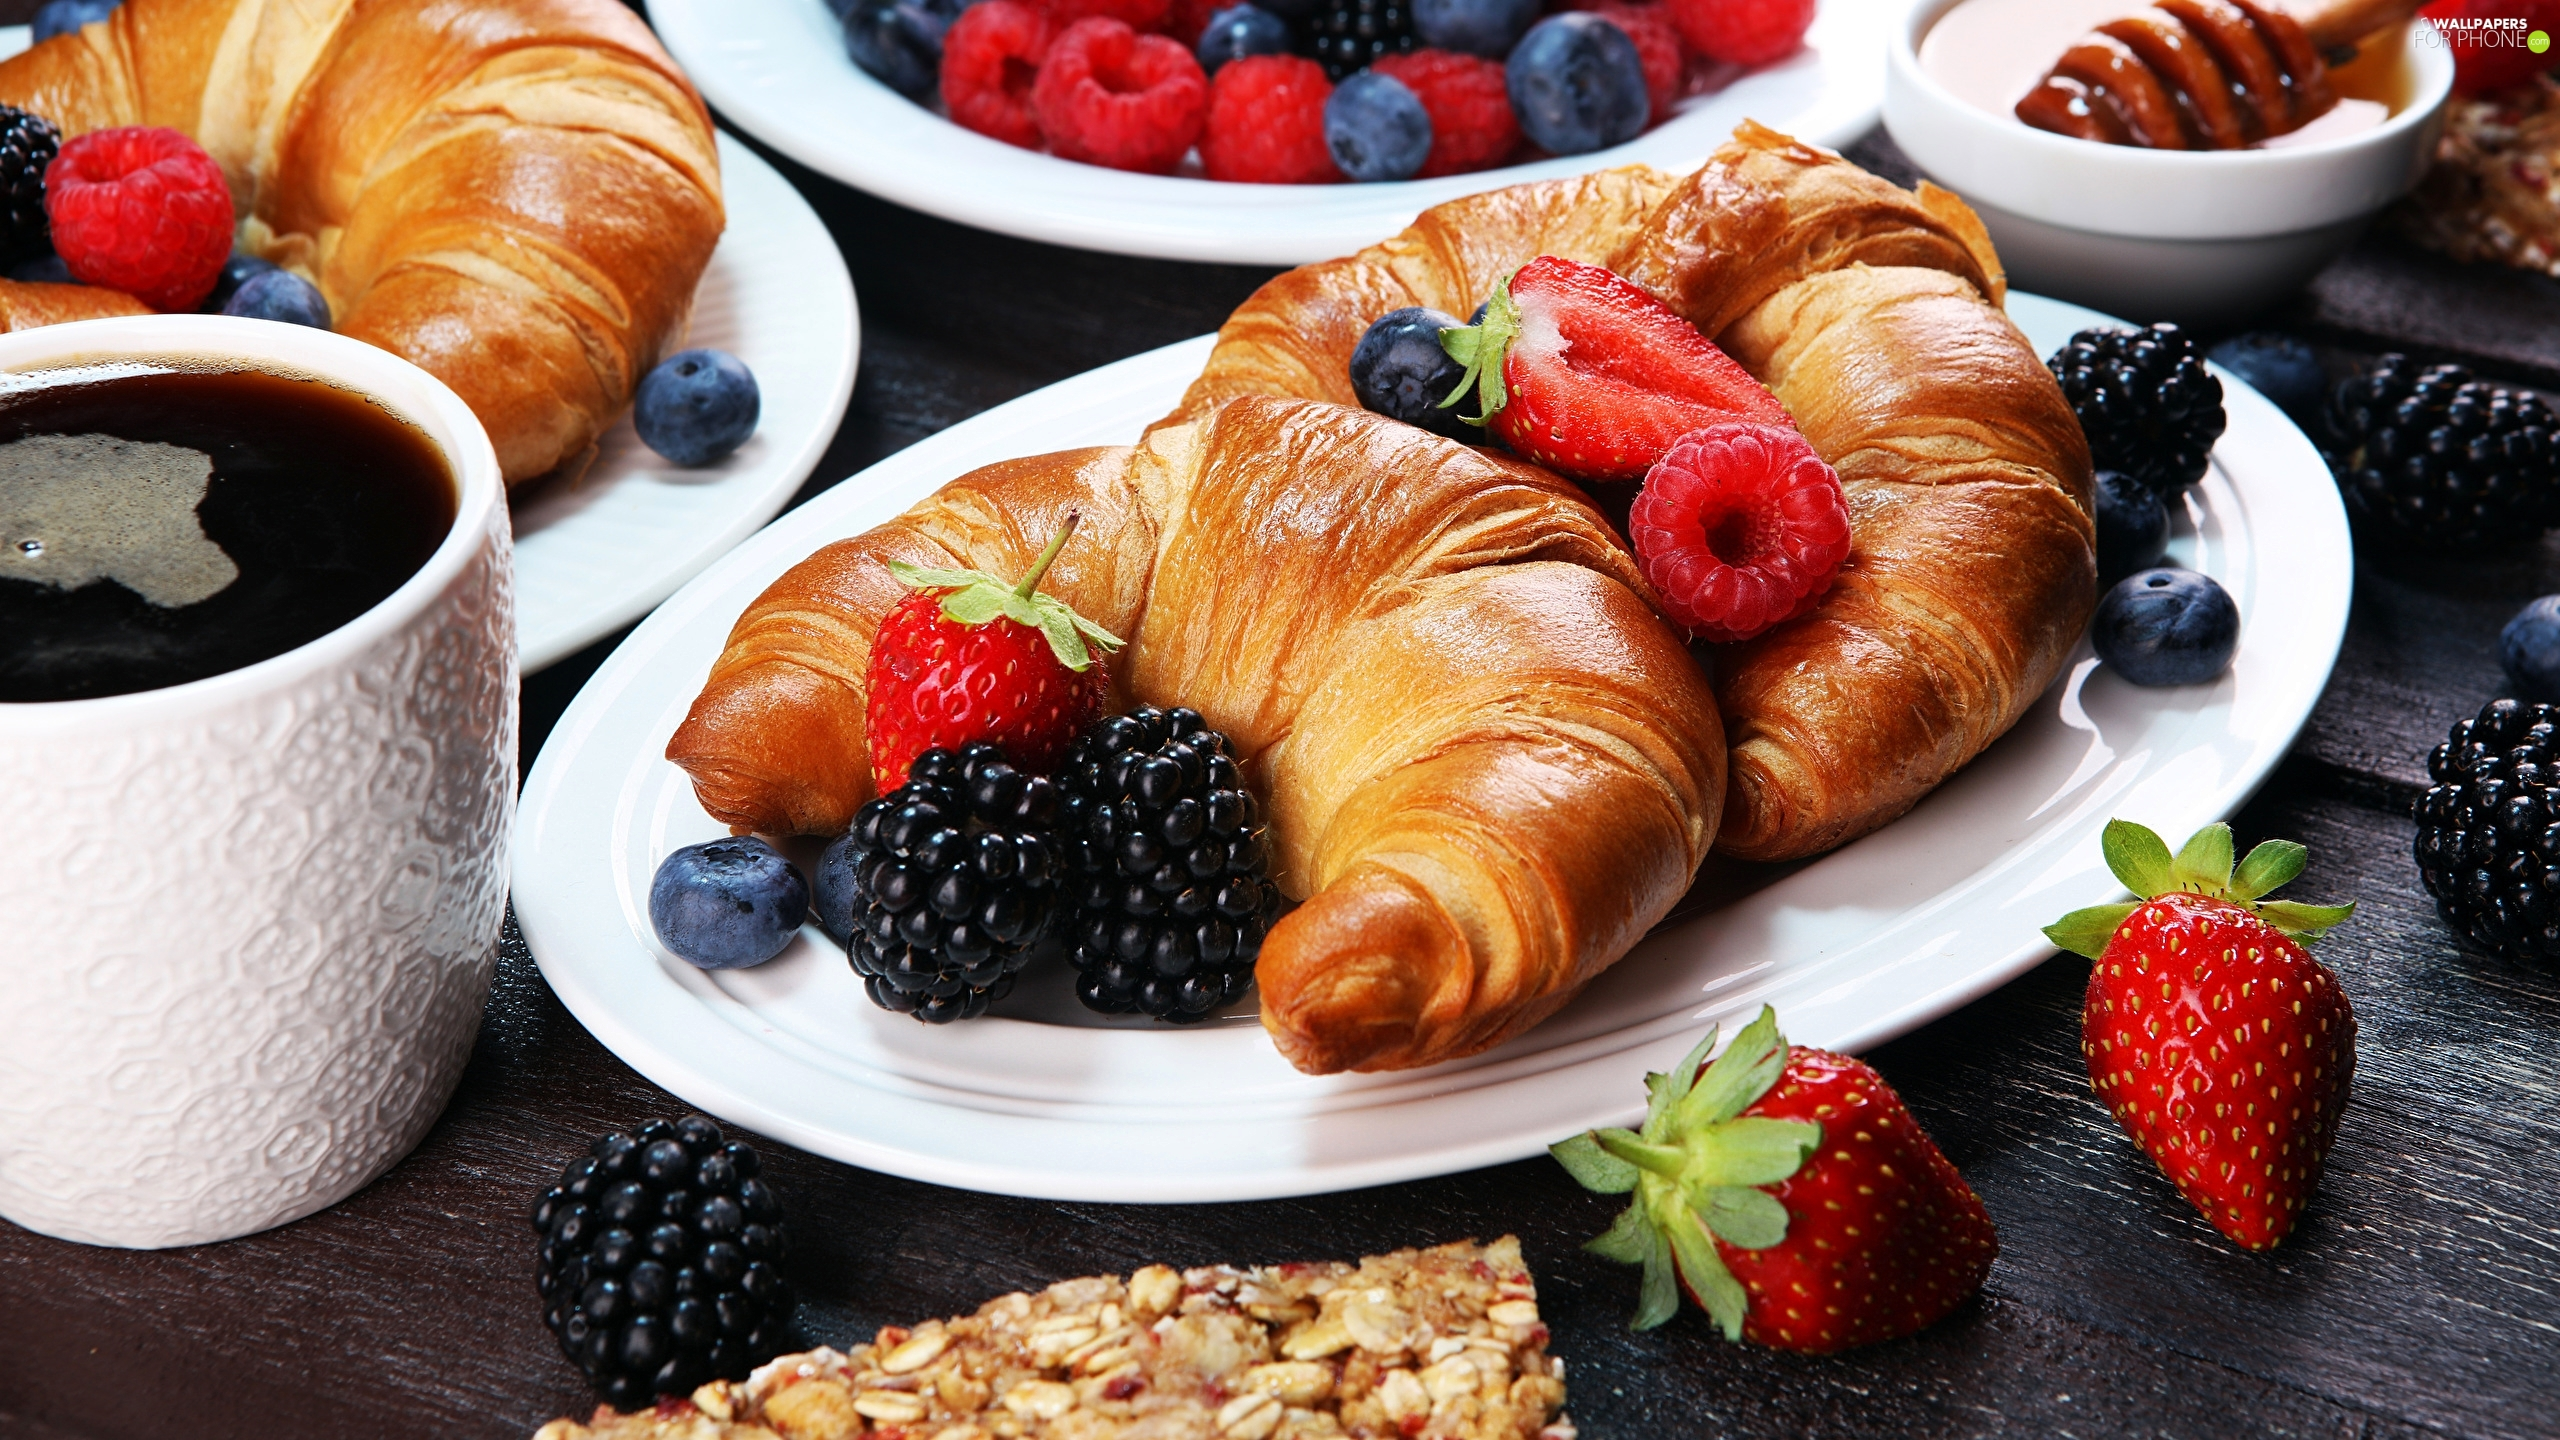 Fruits, breakfast, blueberries, strawberries, raspberries, Cup, coffee, Croissant, croissants, plate, blackberries